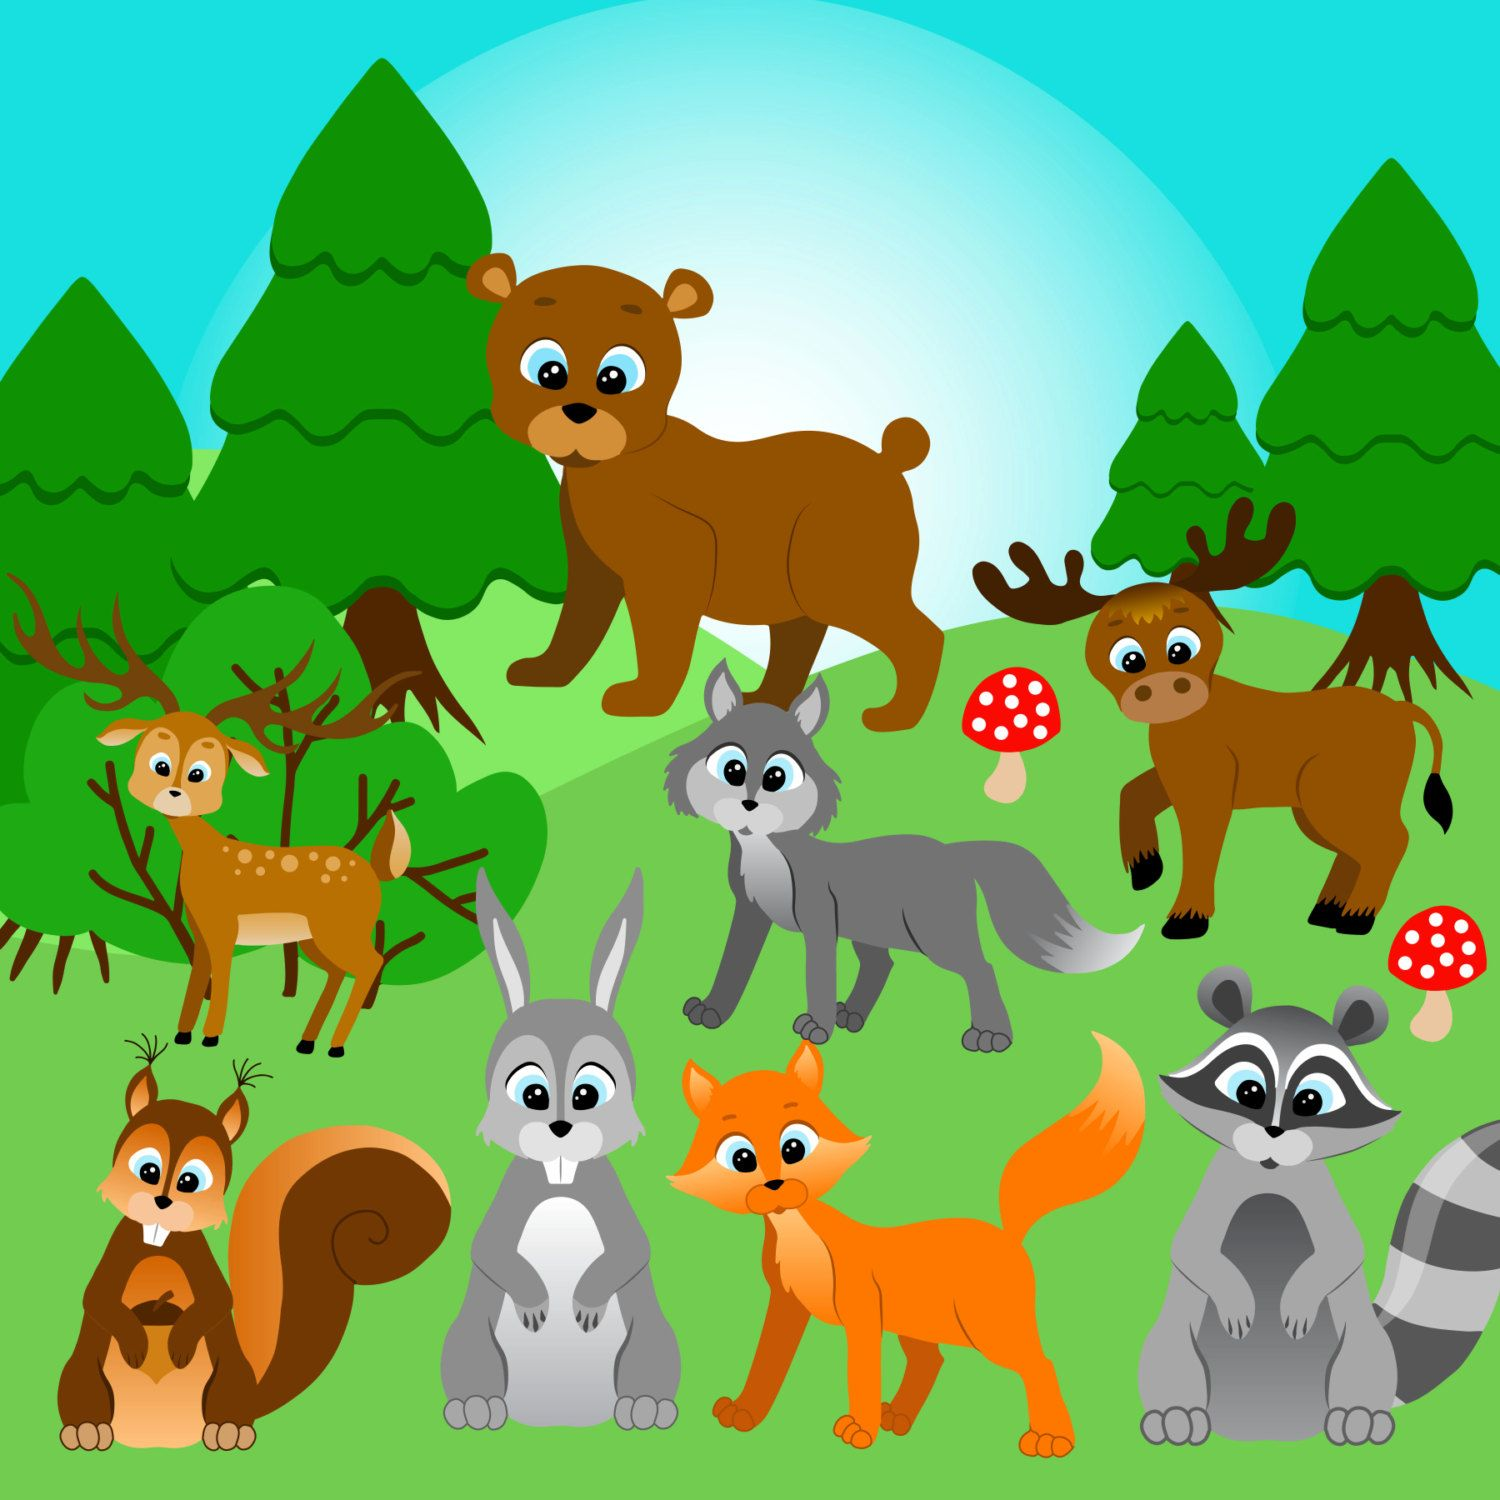 Forest animals clipart Forest clip art Woodland C….